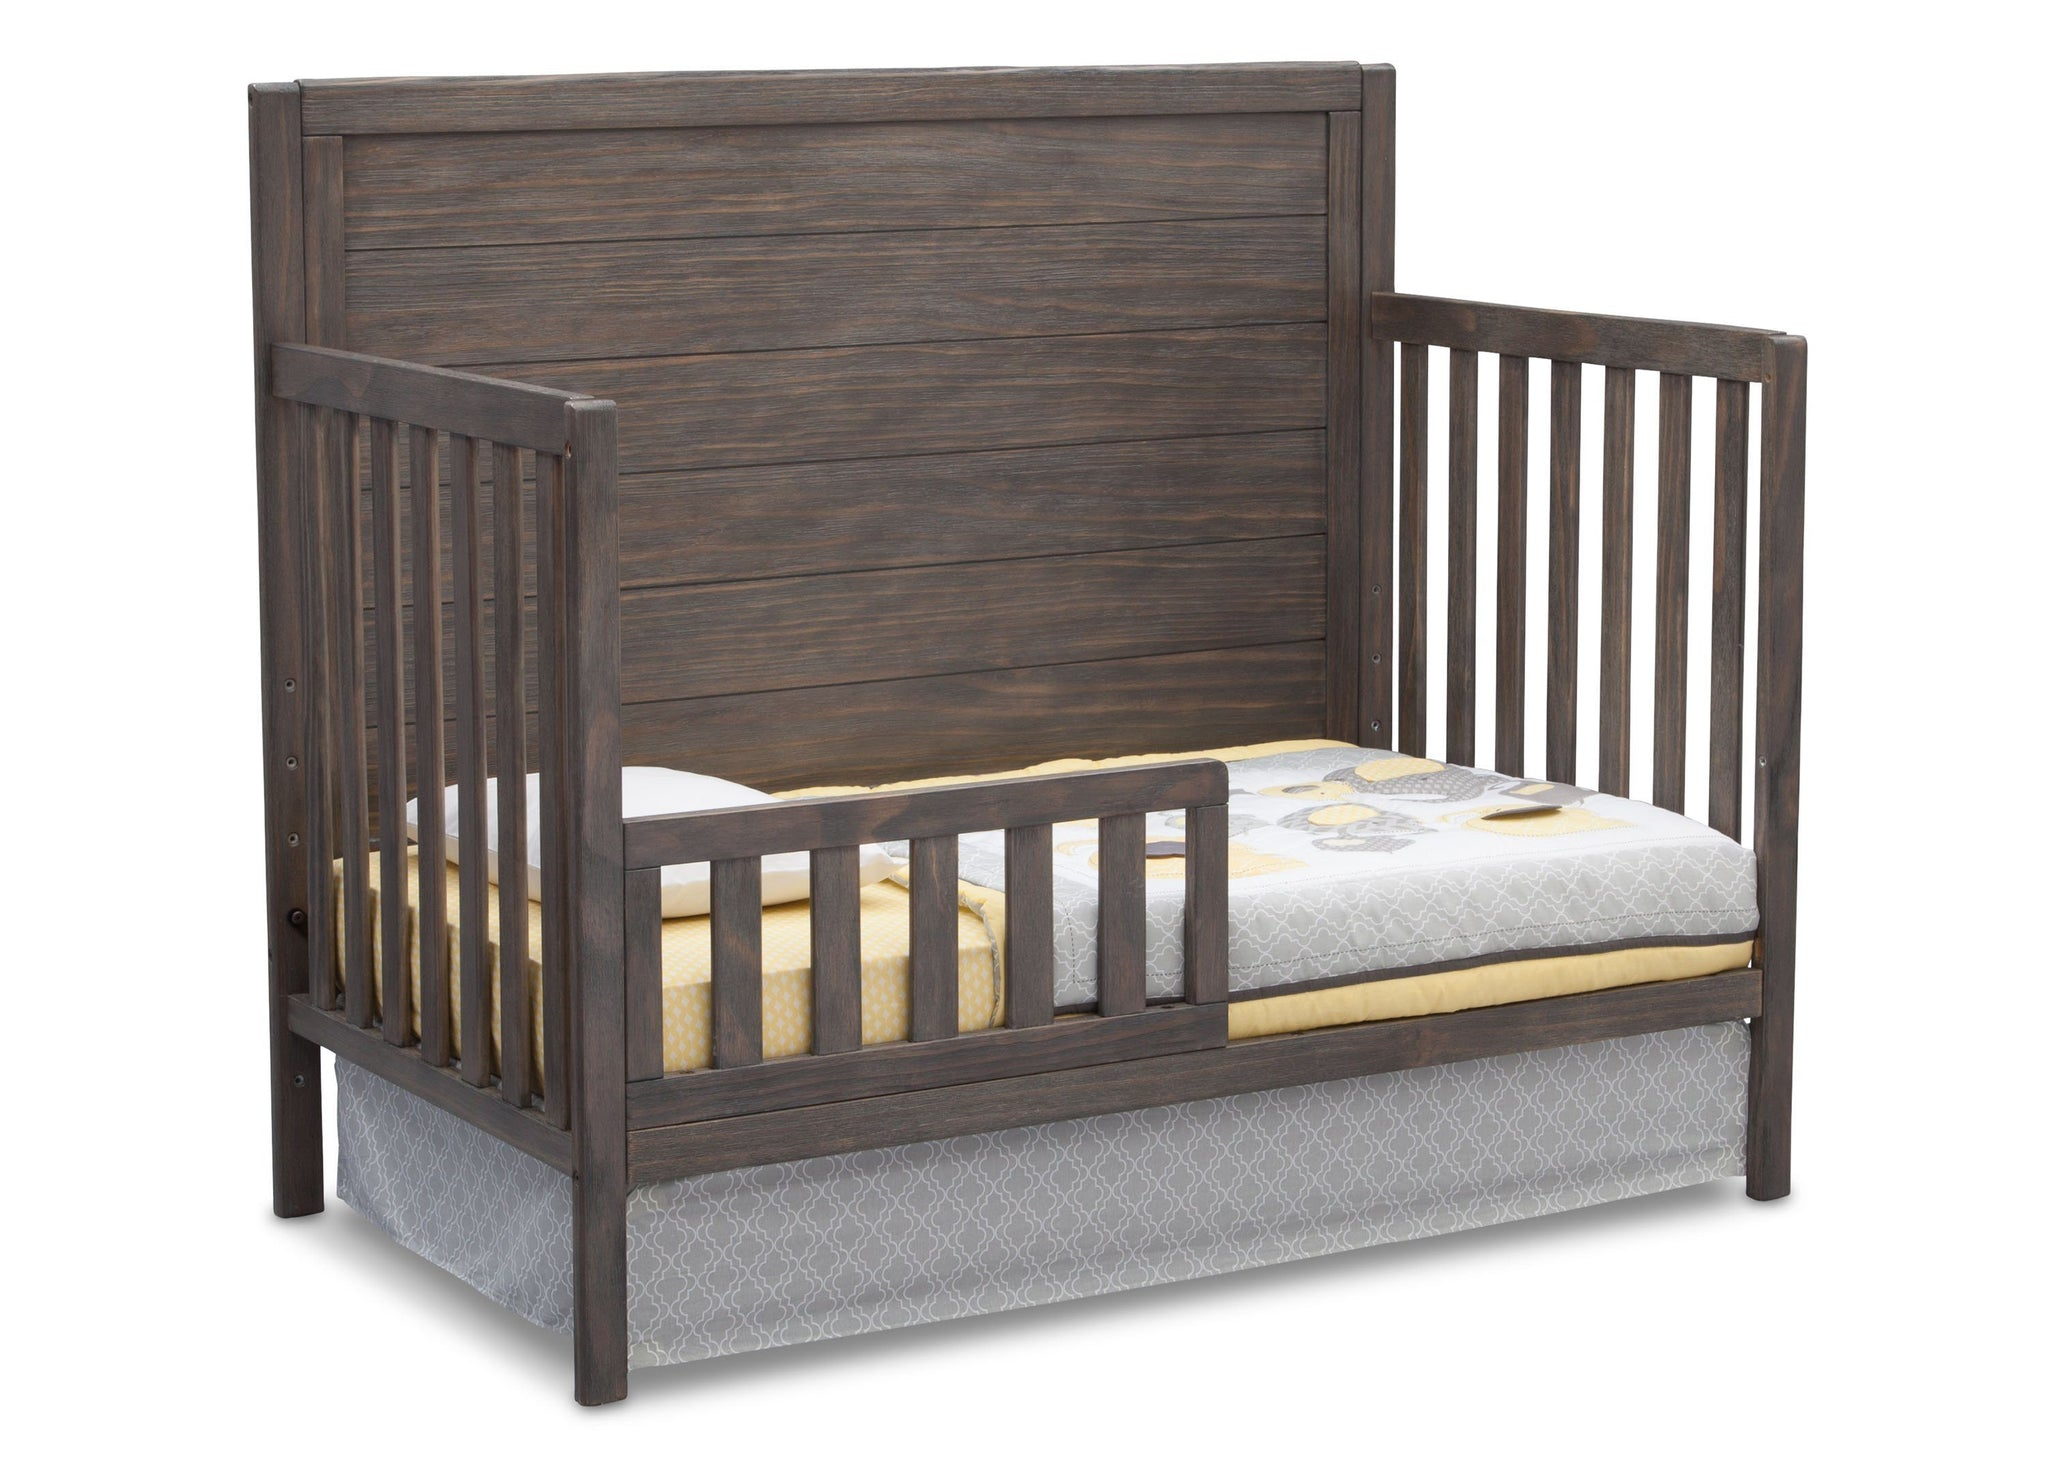 Serta Rustic Grey (084) Cambridge 4-in-1 Convertibel Crib, Toddler Bed View a4a